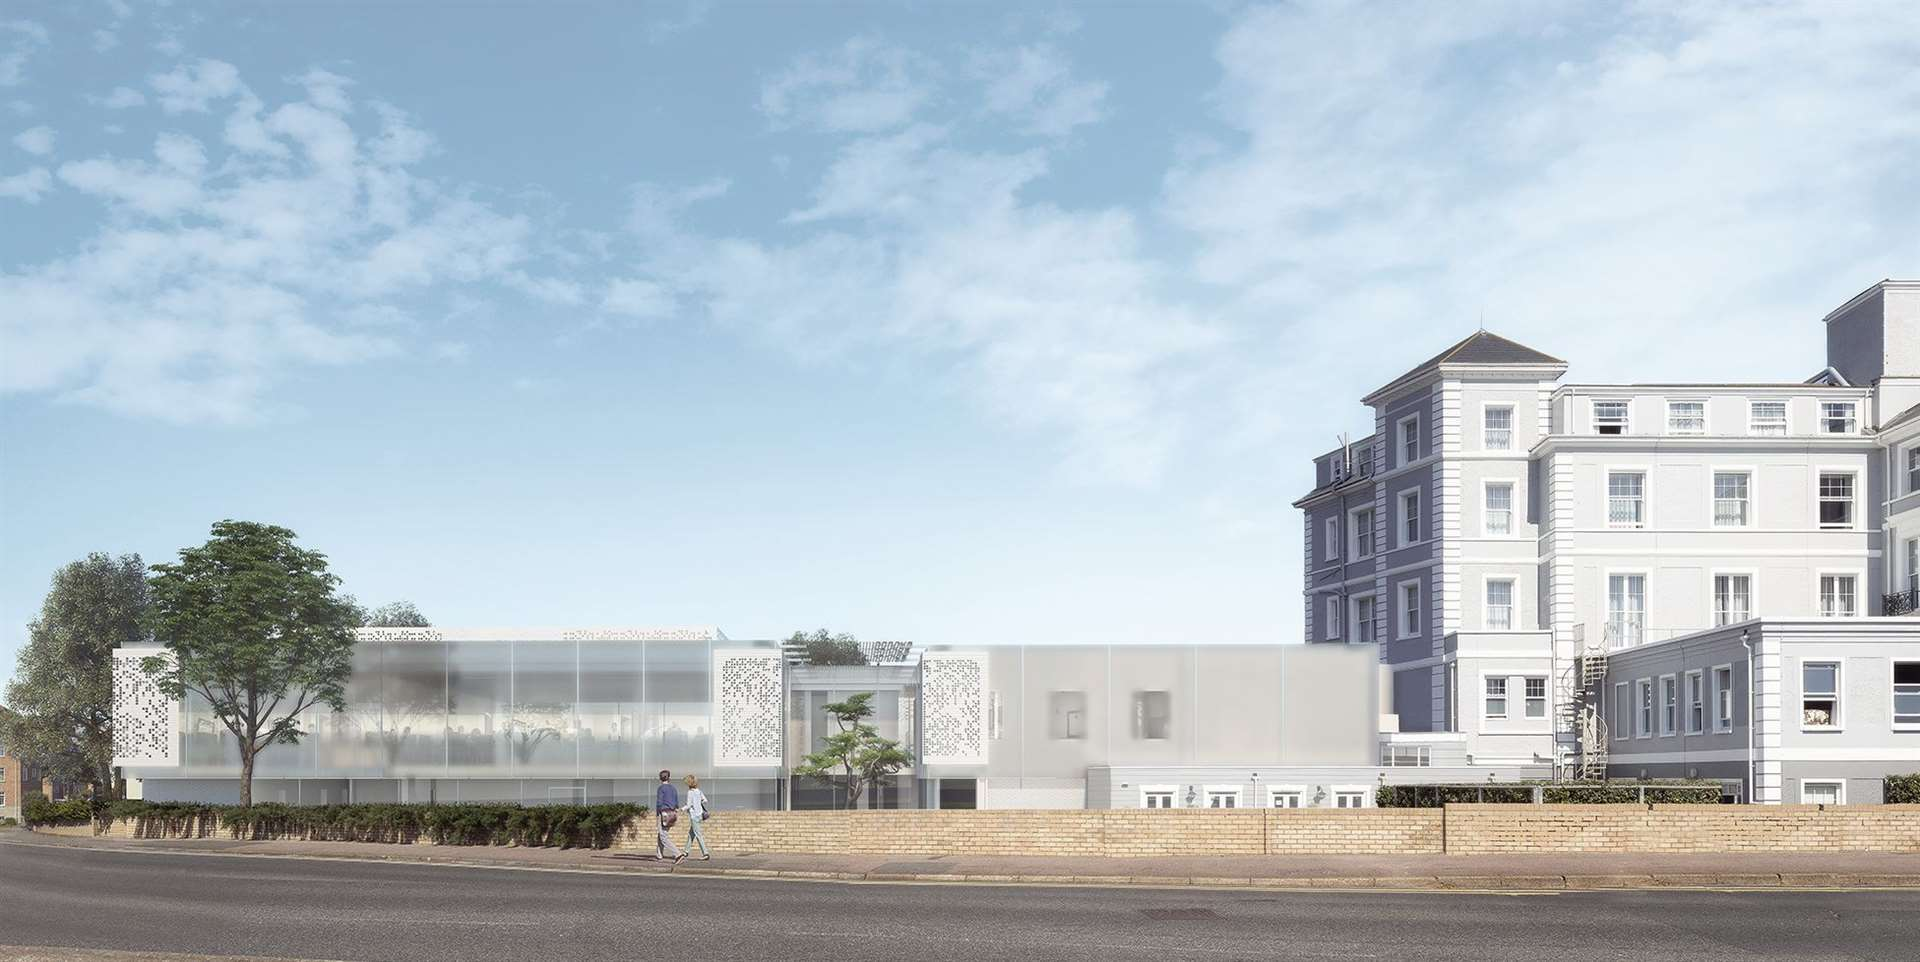 New spa and gym facilities are planned for the seafront hotel